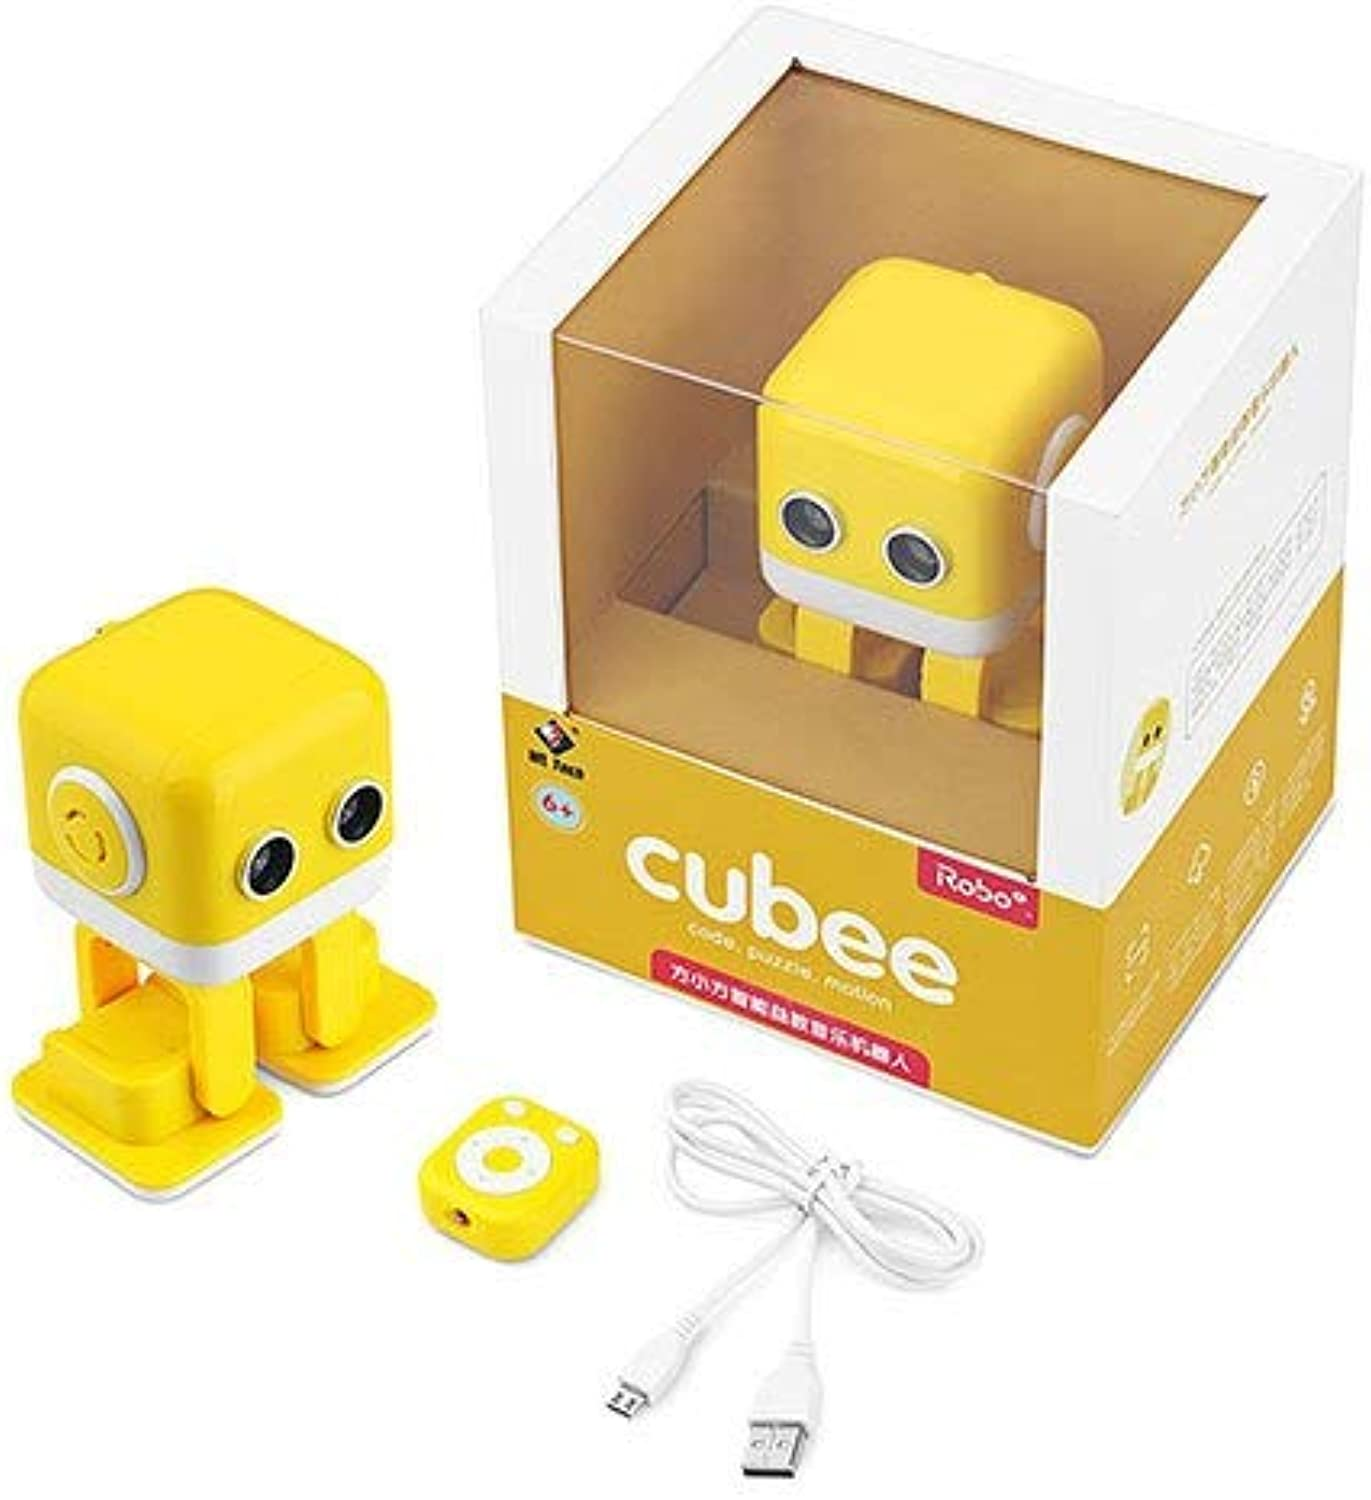 Generic WLTOYS Cubee RC Intelligent Robot Smart blueetooth Speaker Musical Dancing Toy Attractive LED Face Desk Gift Gesture Interative Yellow